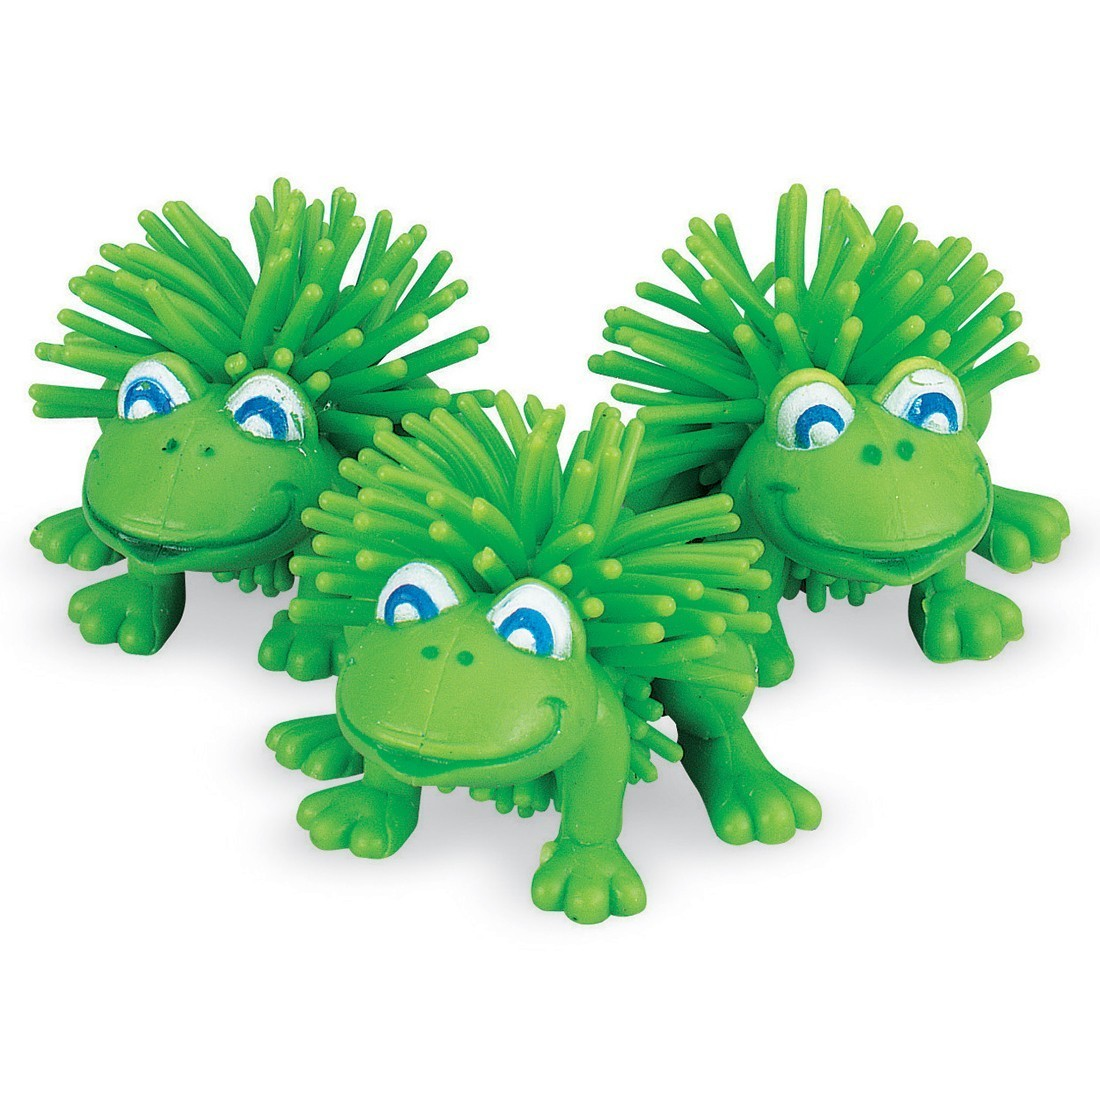 Spike Frogs [image]